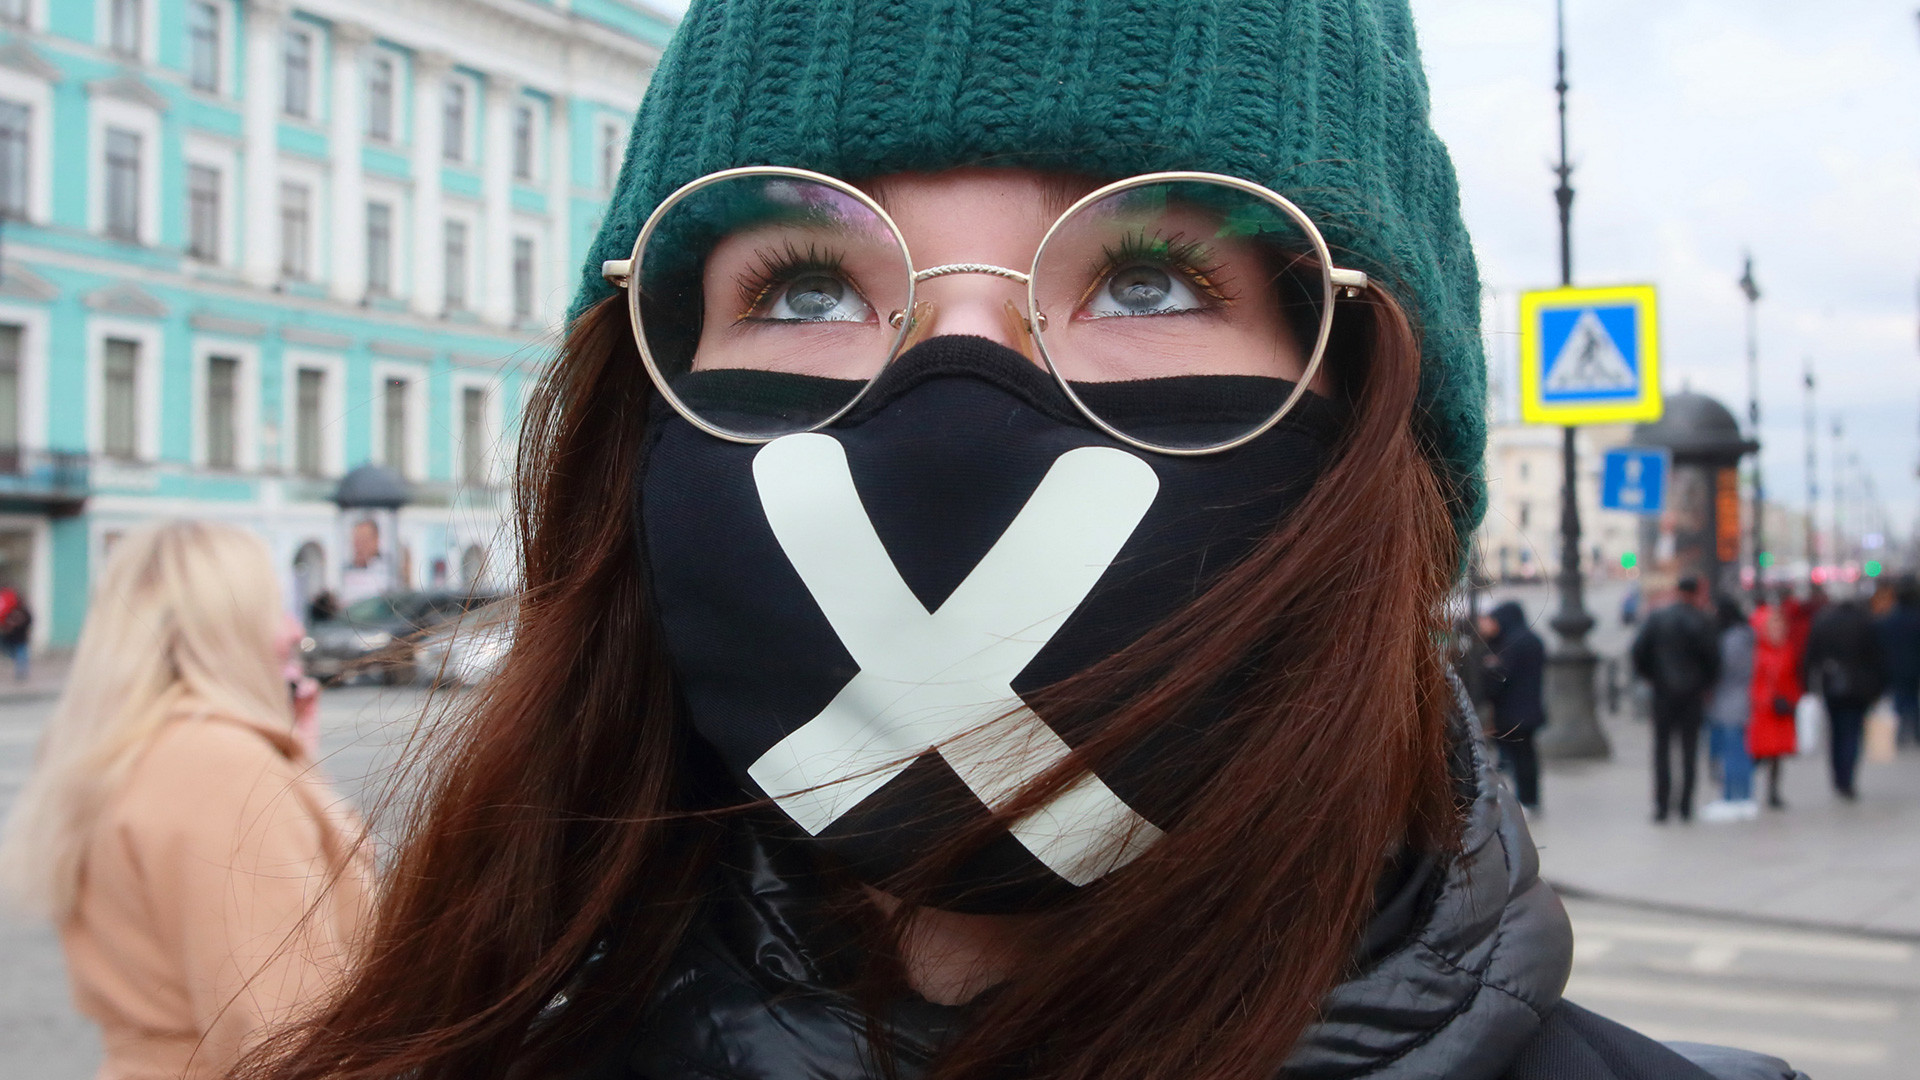 A girl wearing a mask in St. Petersburg.